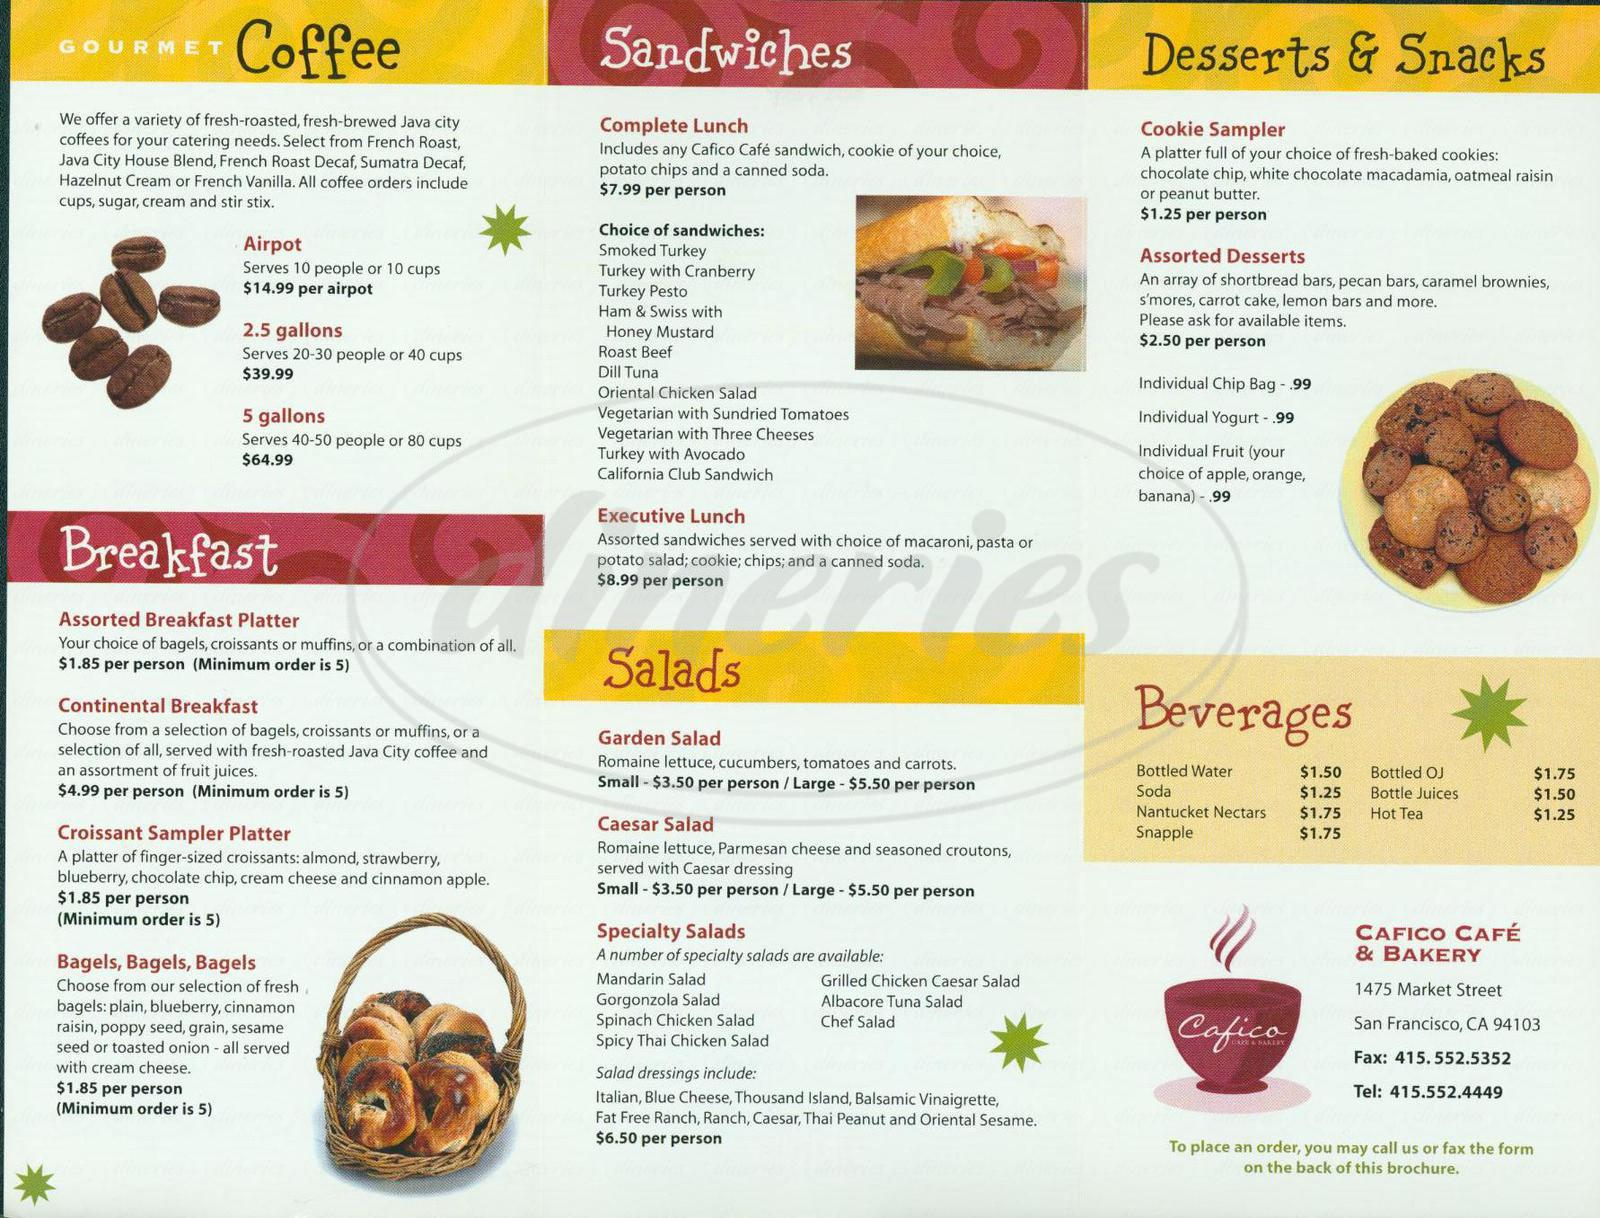 menu for Cafico Cafe & Bakery